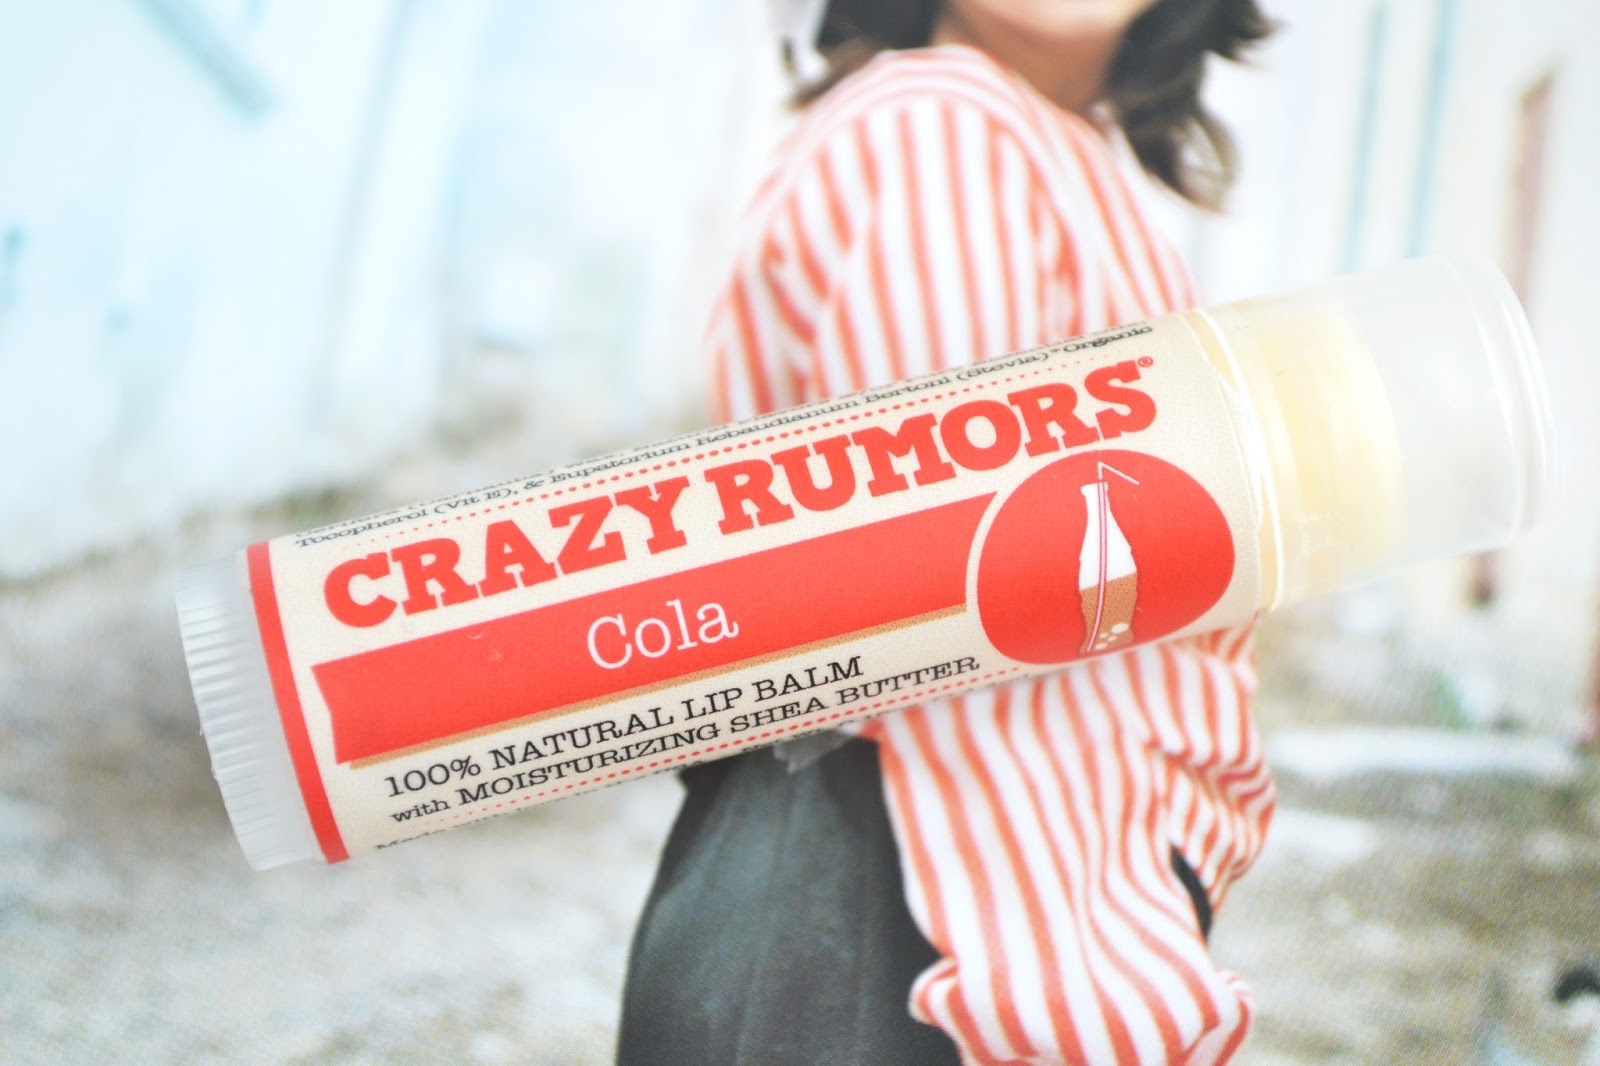 Crazy Rumors COLA lip balm review, crazy rumours lip balm UK